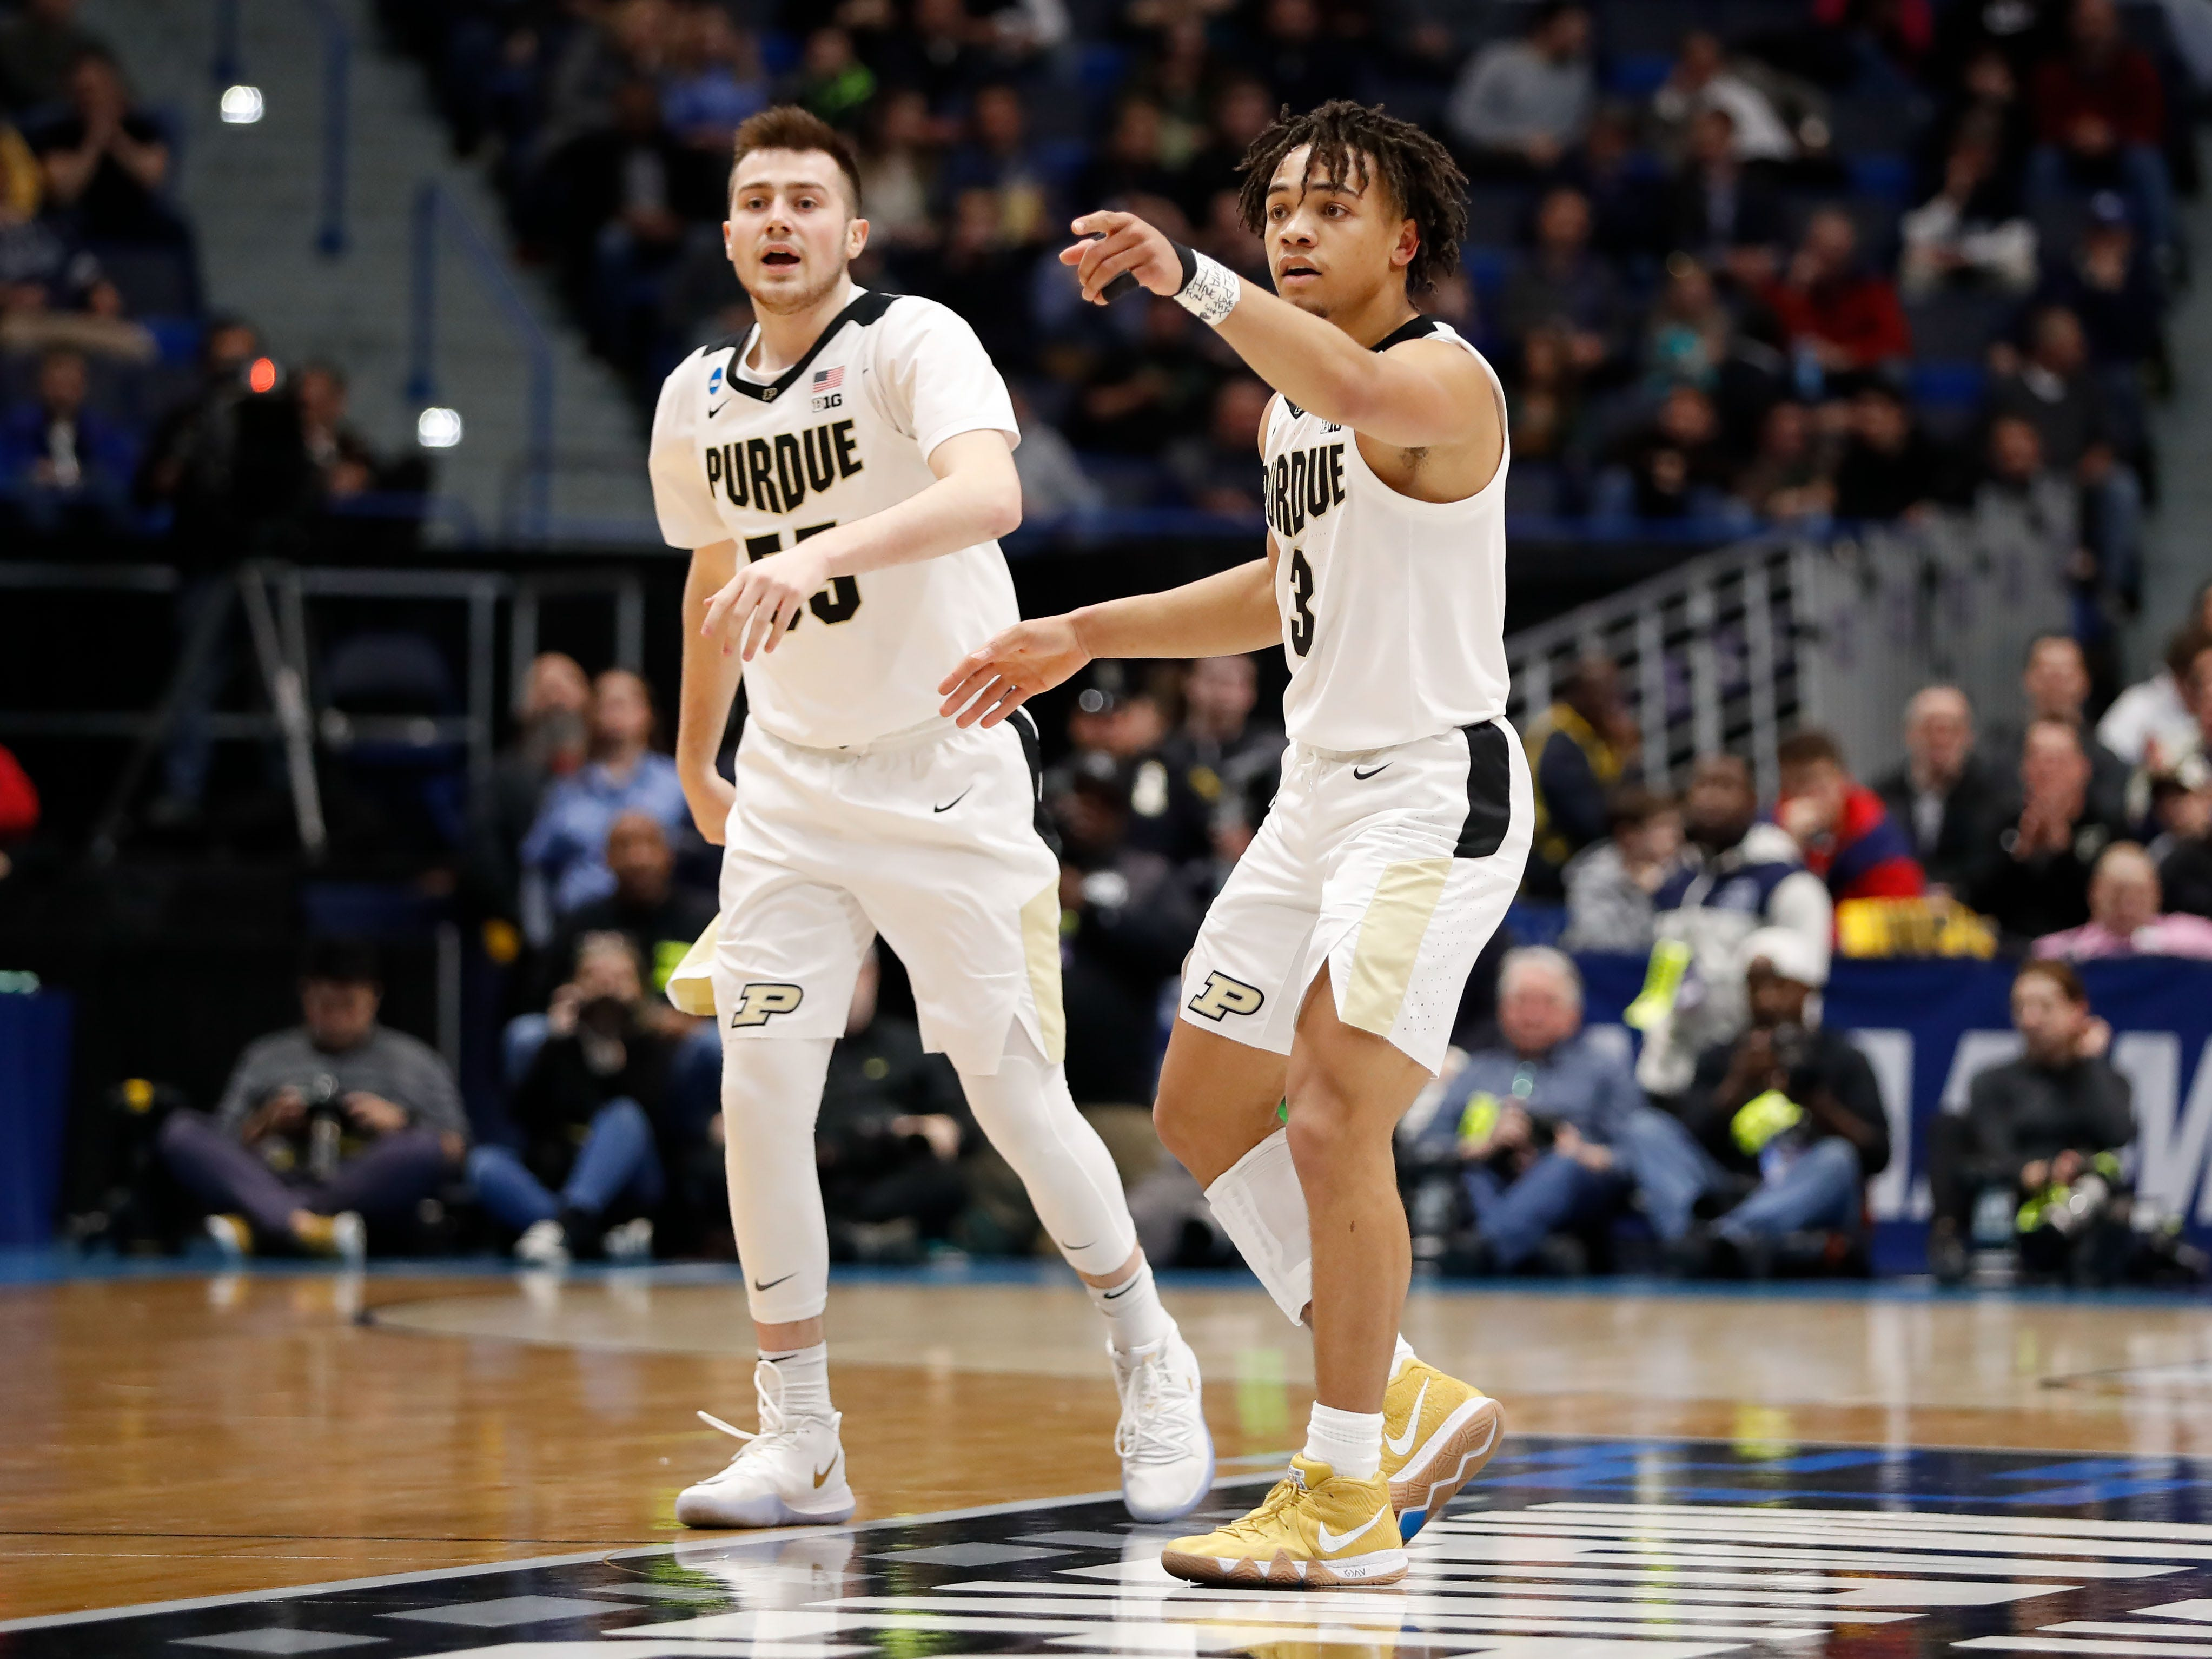 Mar 21, 2019; Hartford, CT, USA; Purdue Boilermakers guard Carsen Edwards (3) talks over a play with guard Sasha Stefanovic (55) against the Old Dominion Monarchs during the first half of a game in the first round of the 2019 NCAA Tournament at XL Center. Mandatory Credit: David Butler II-USA TODAY Sports